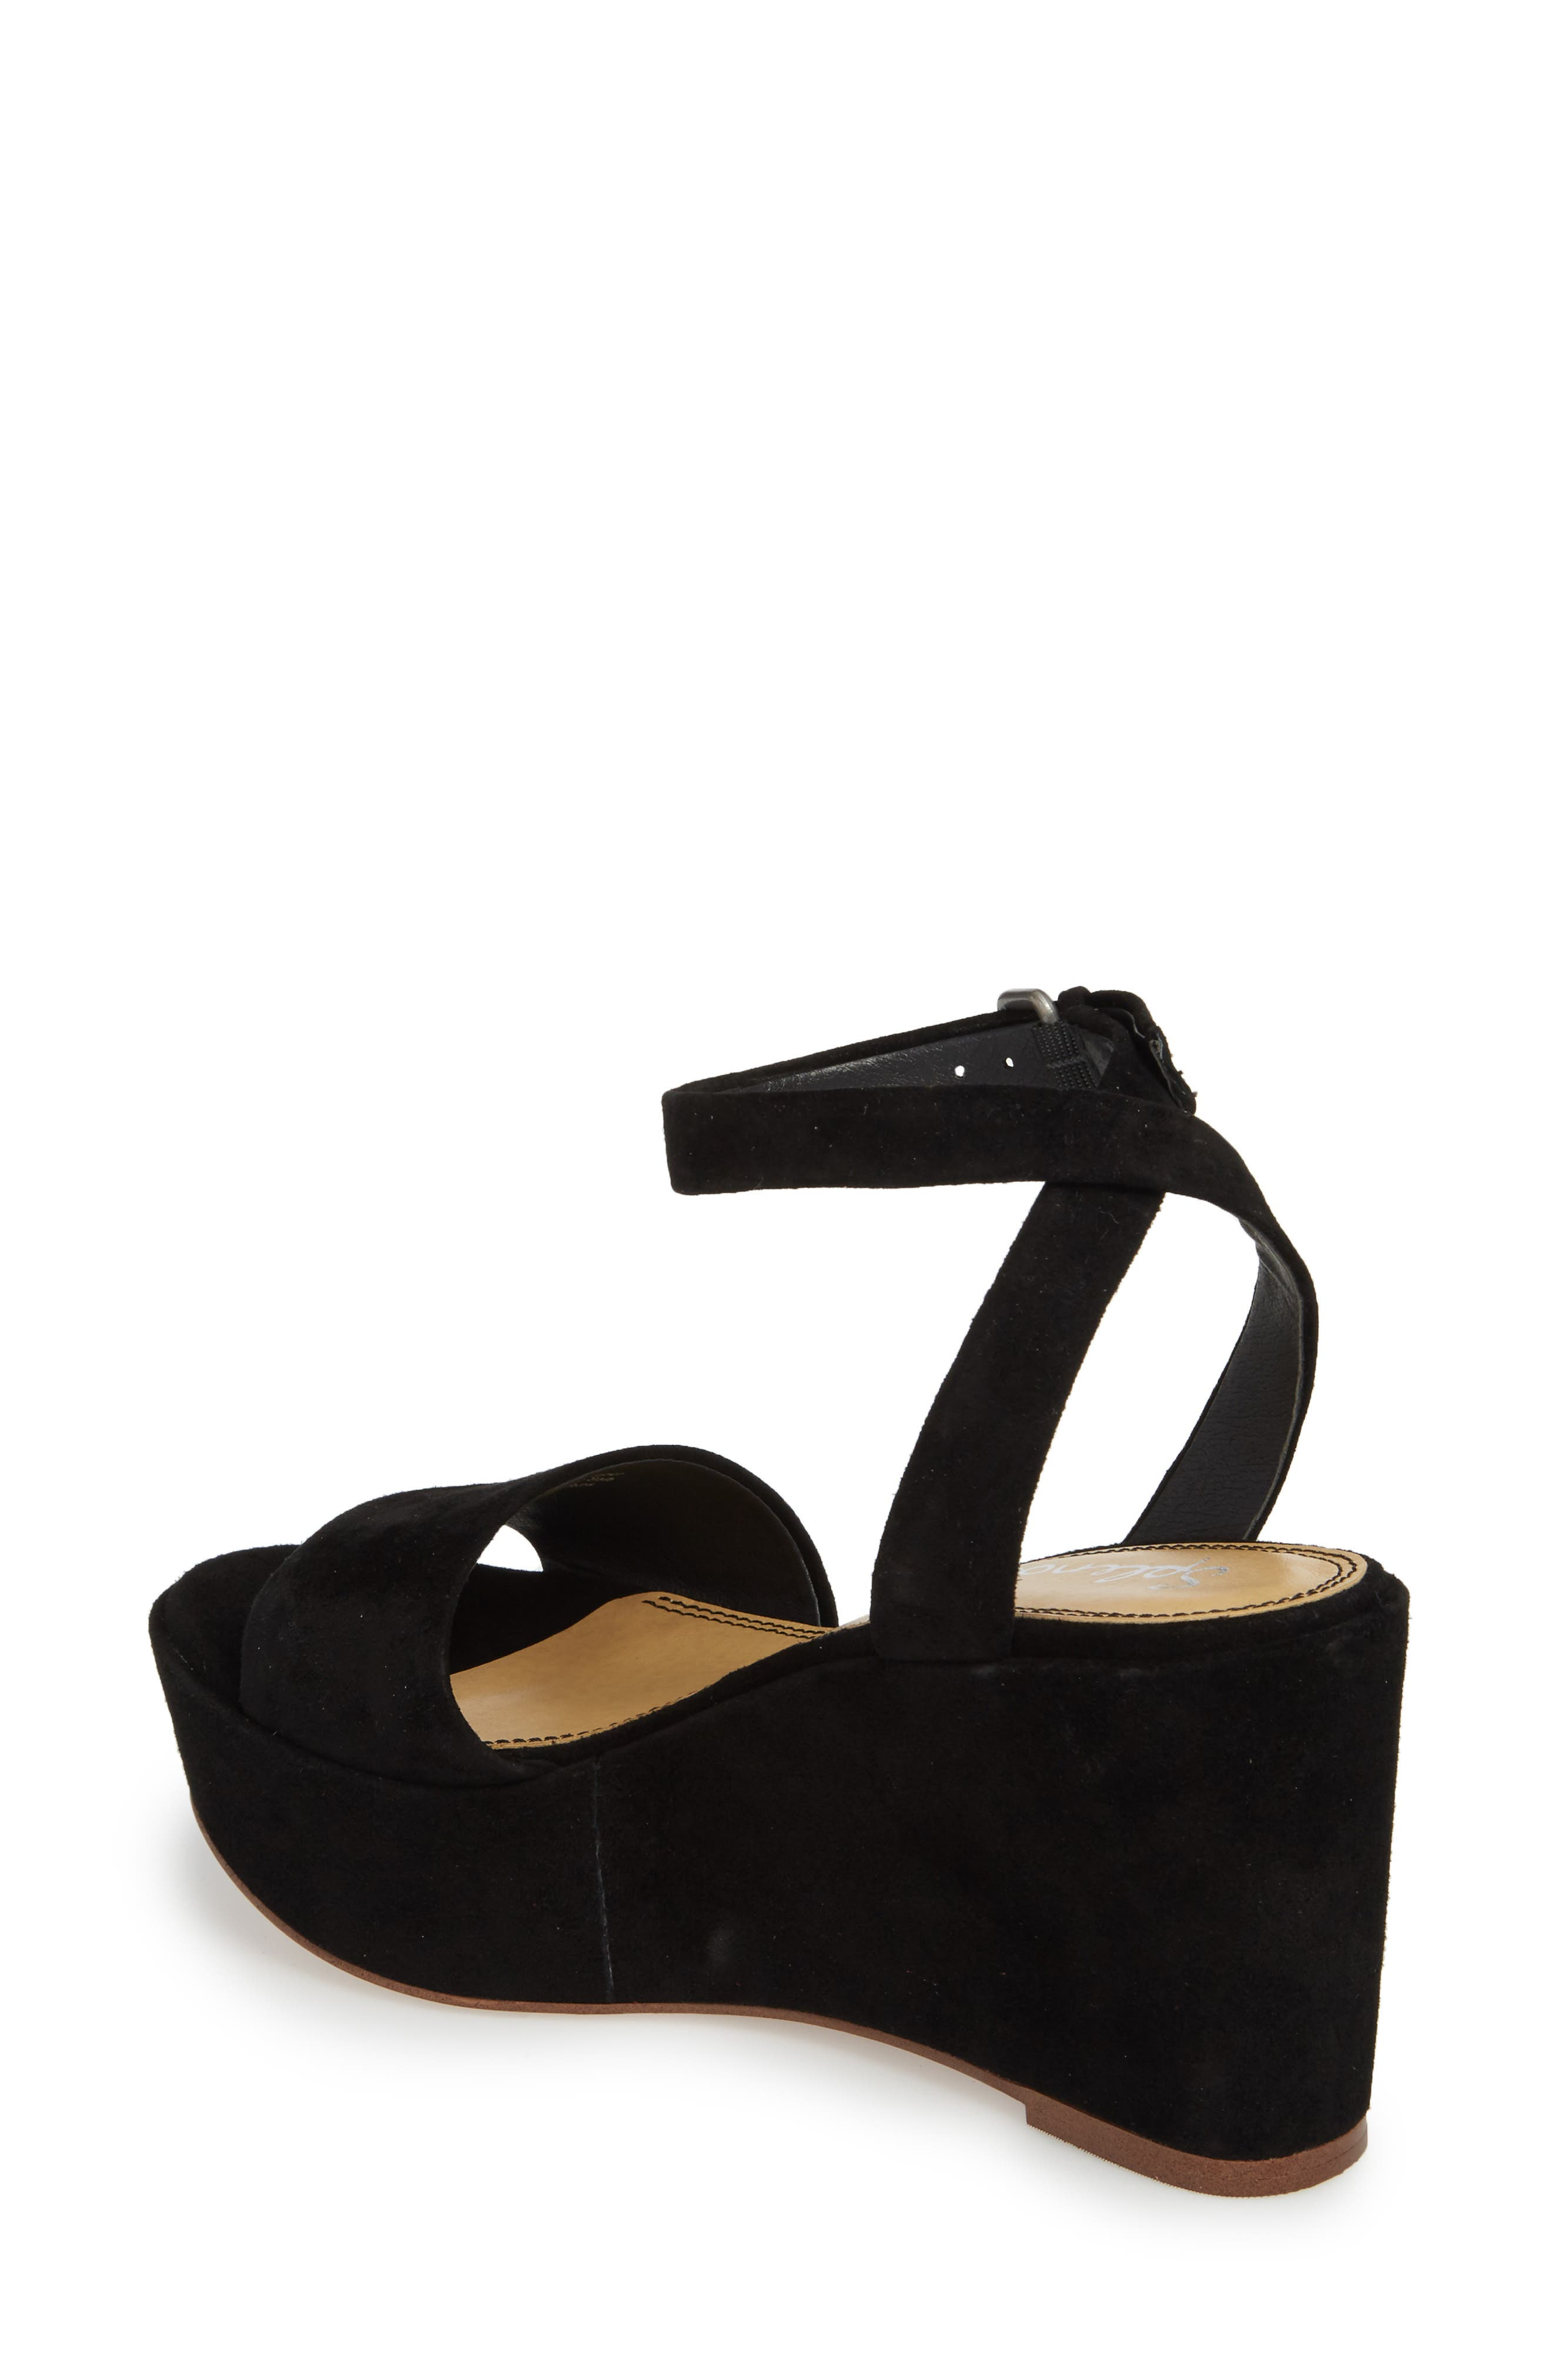 Felix Platform Wedge Sandal,                             Alternate thumbnail 2, color,                             BLACK SUEDE